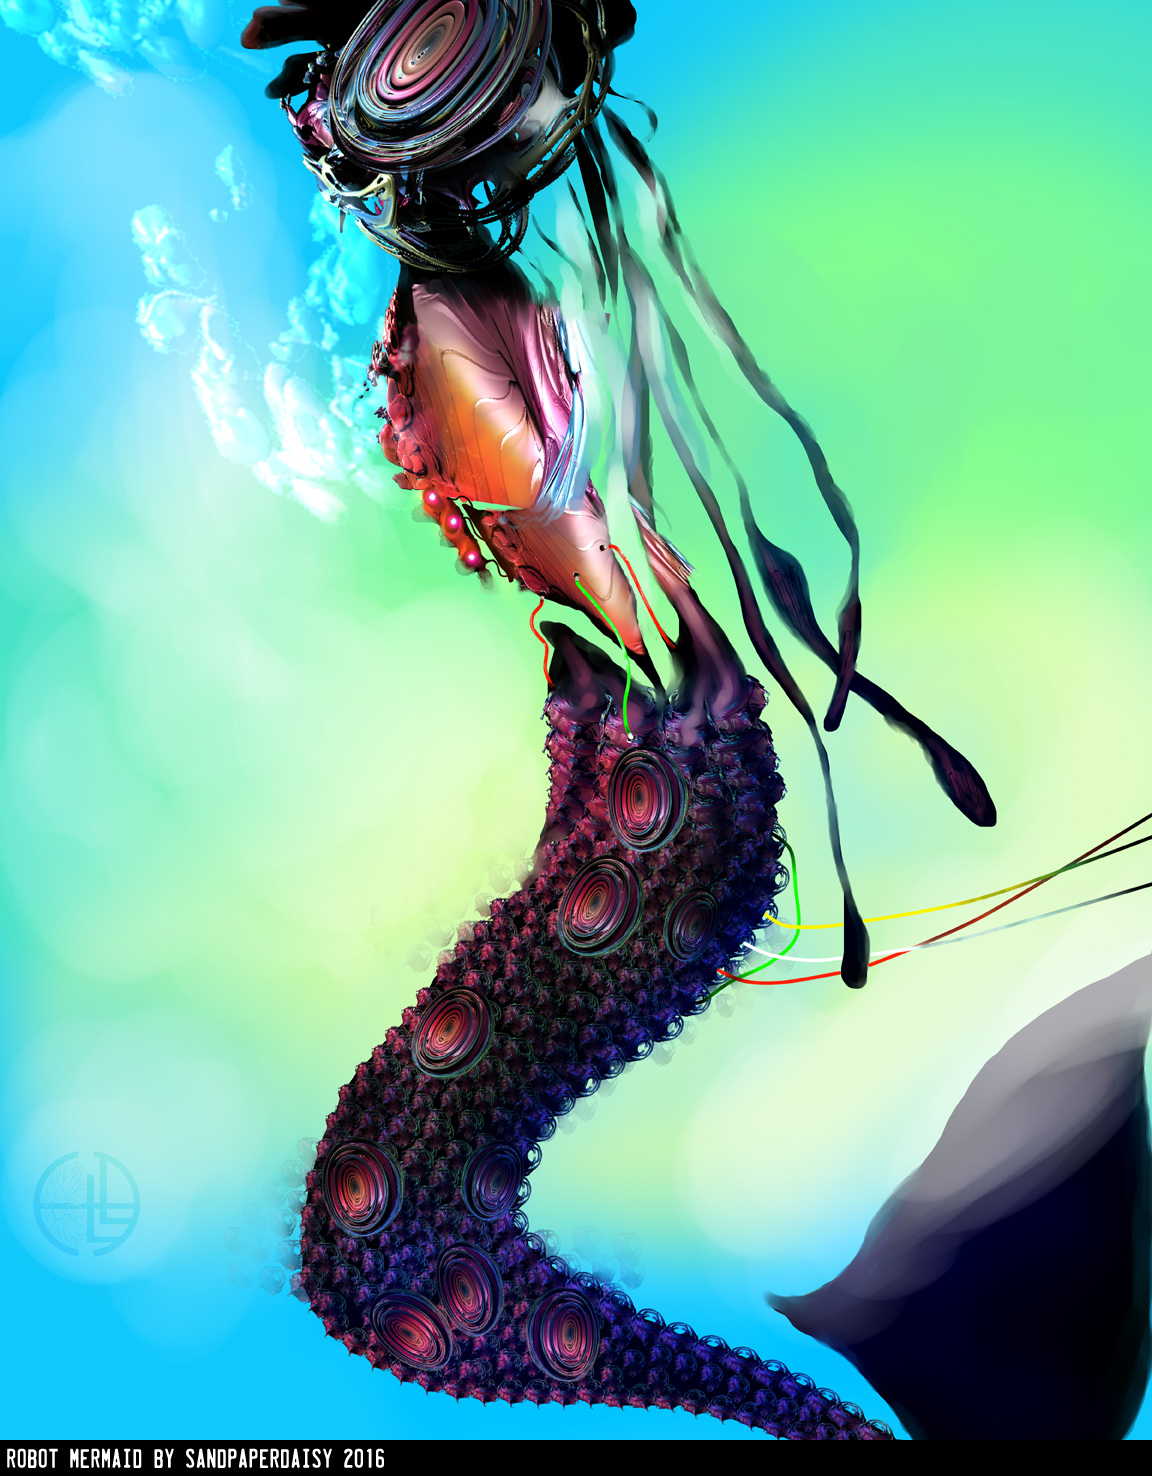 a robot mermaid made of speakers to lure sailors, image made of fractals. Variously credited to heather landrey aka sandpaperdais and heather landry aka sandpaperdaisy